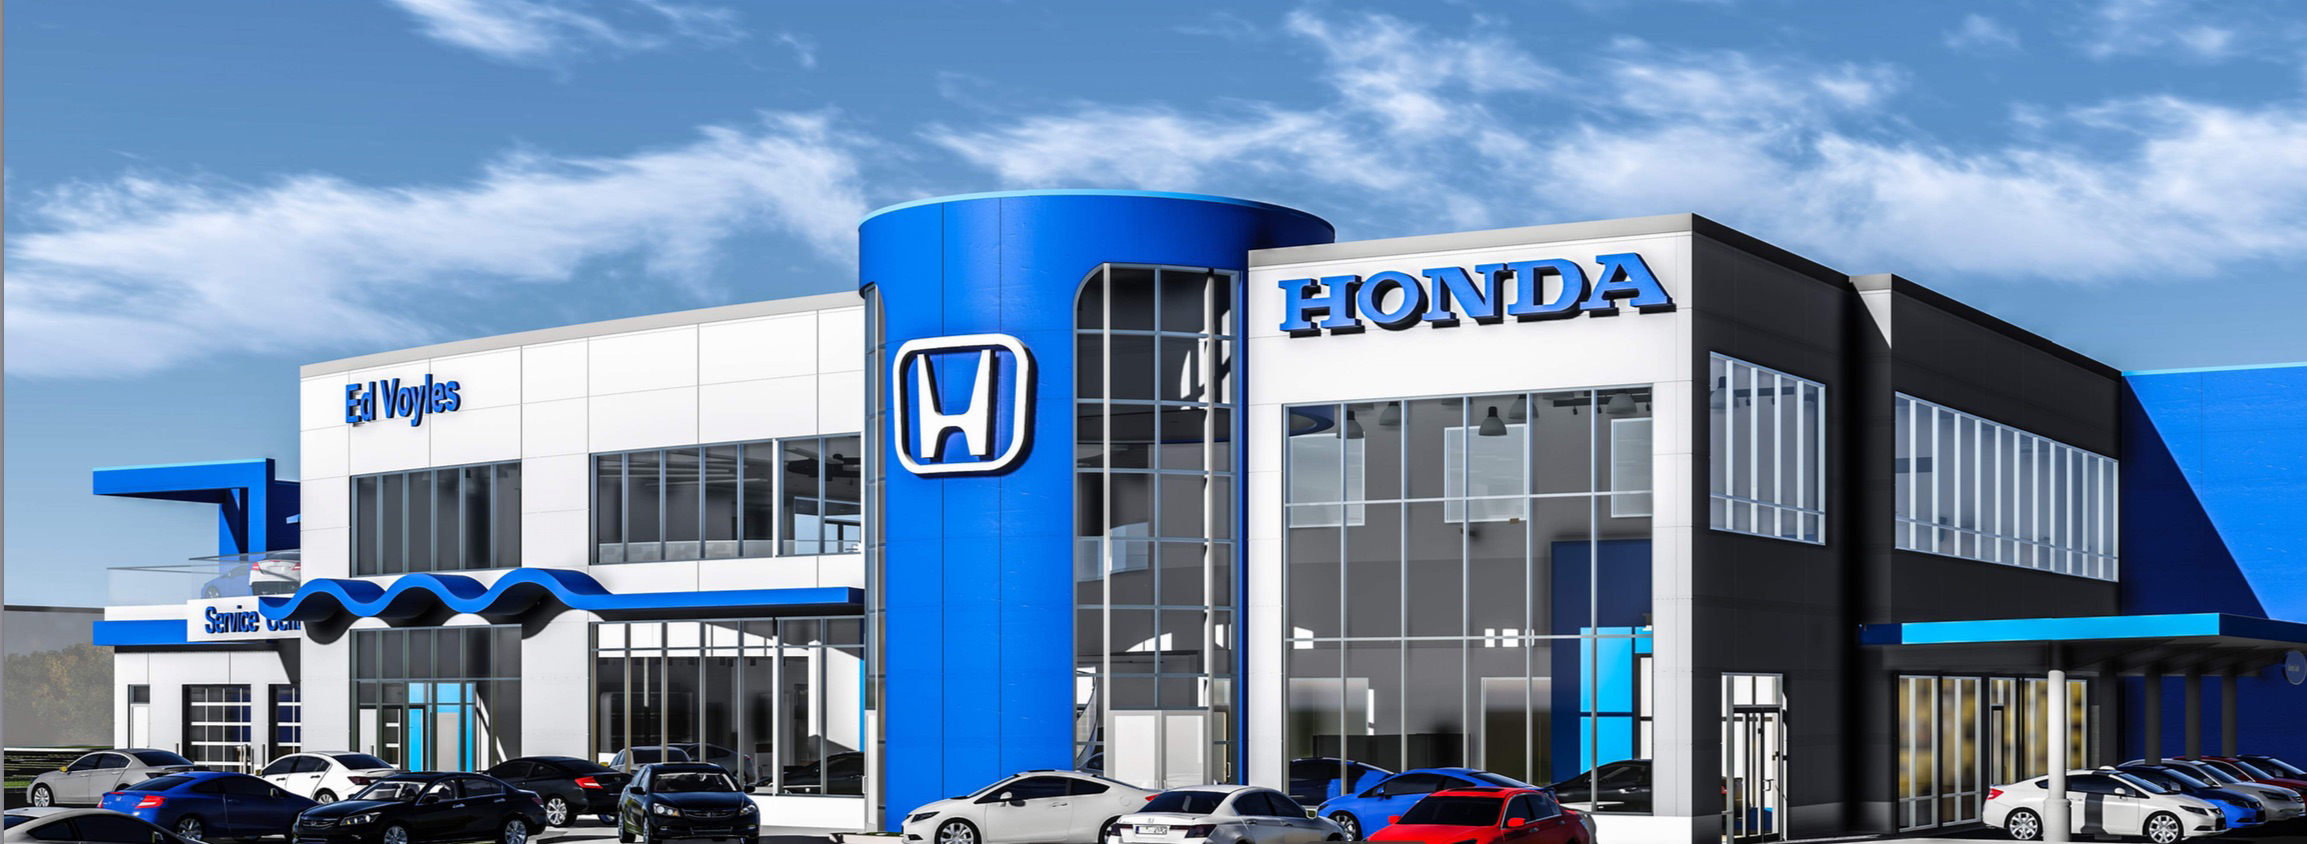 Ed voyles honda new used honda dealership serving for Honda dealership atlanta ga